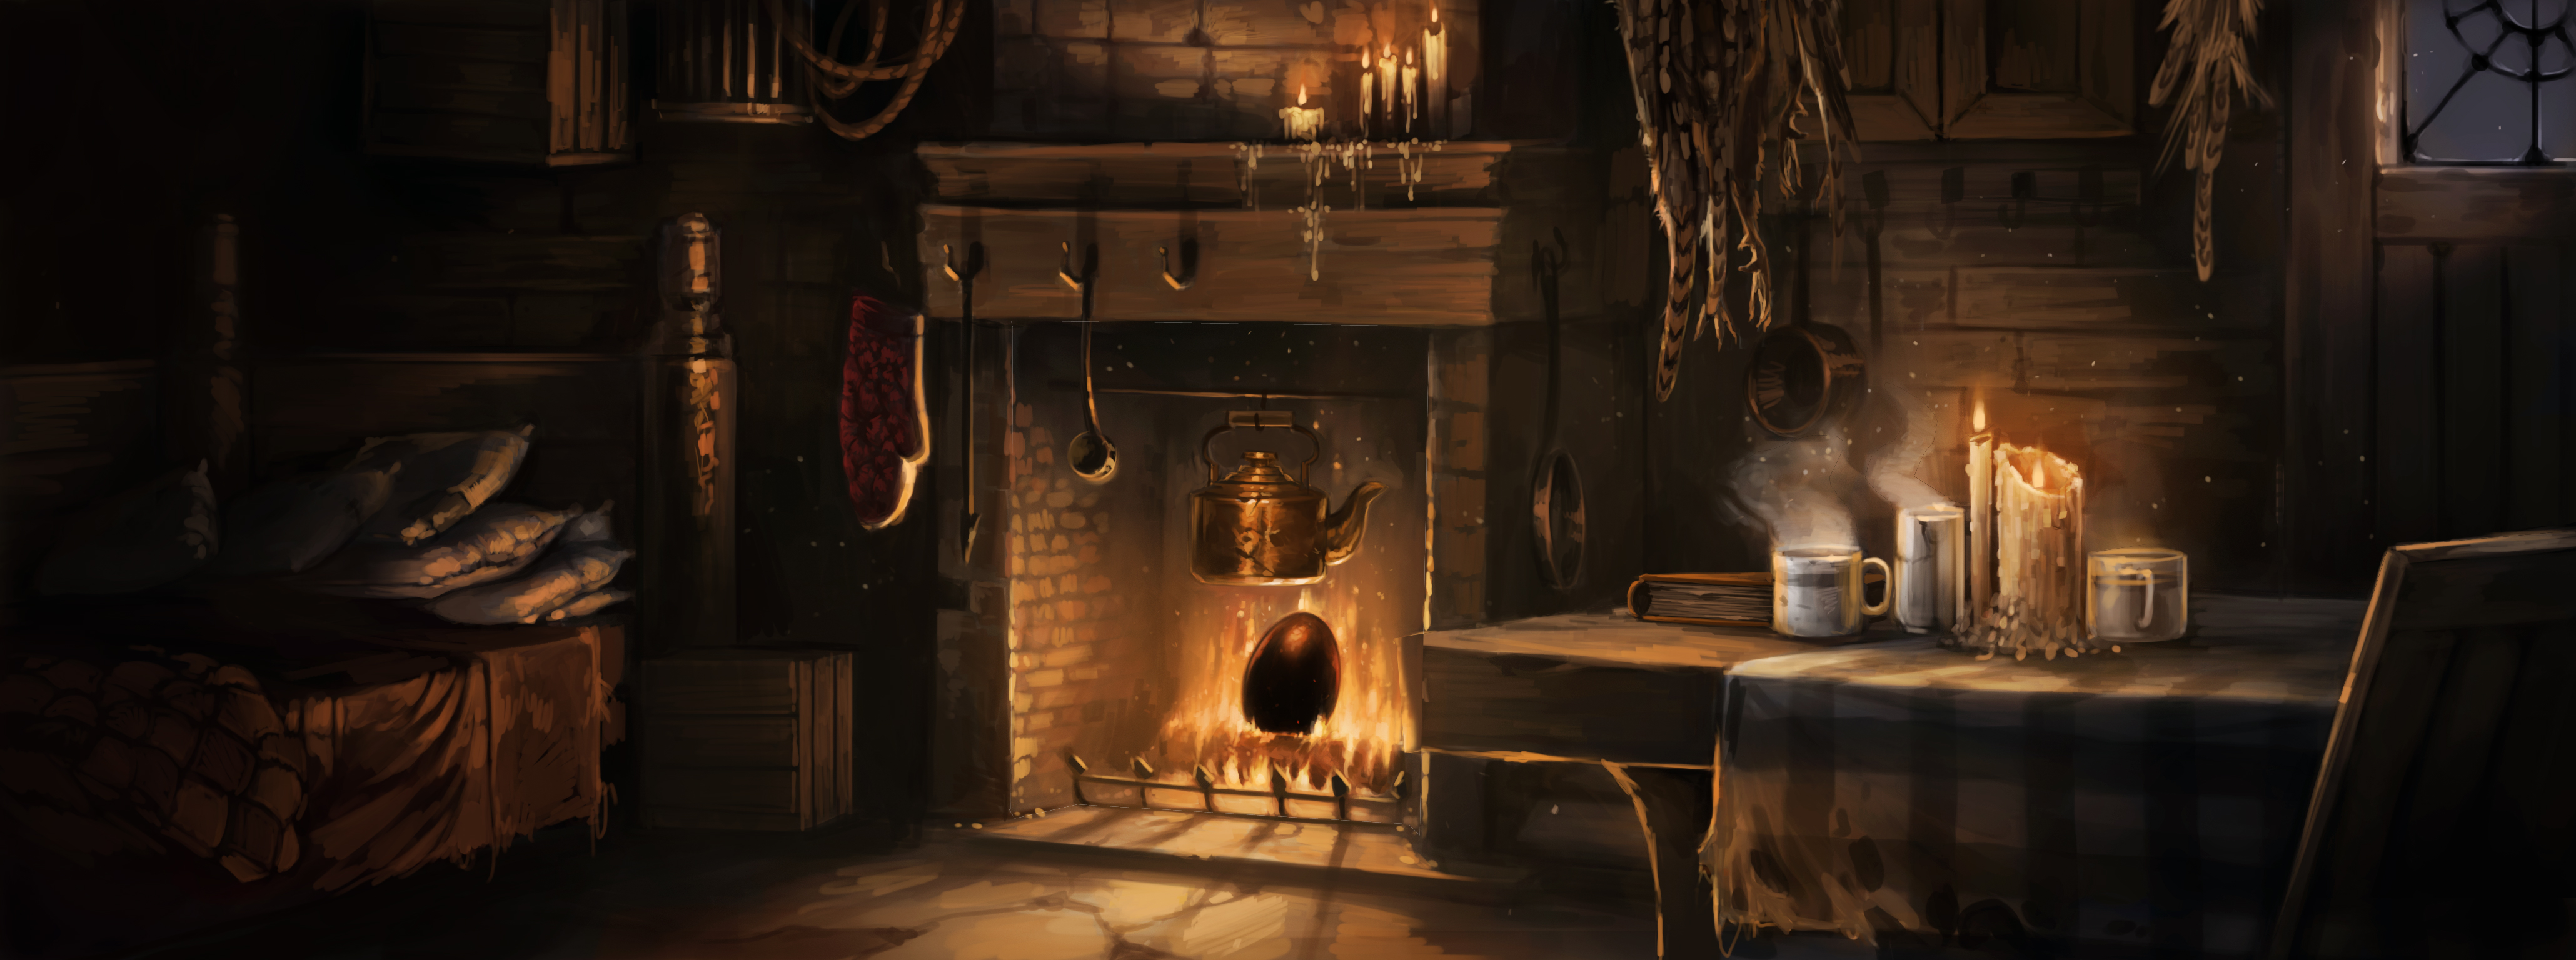 The egg in the fire pottermore What house was hagrid in